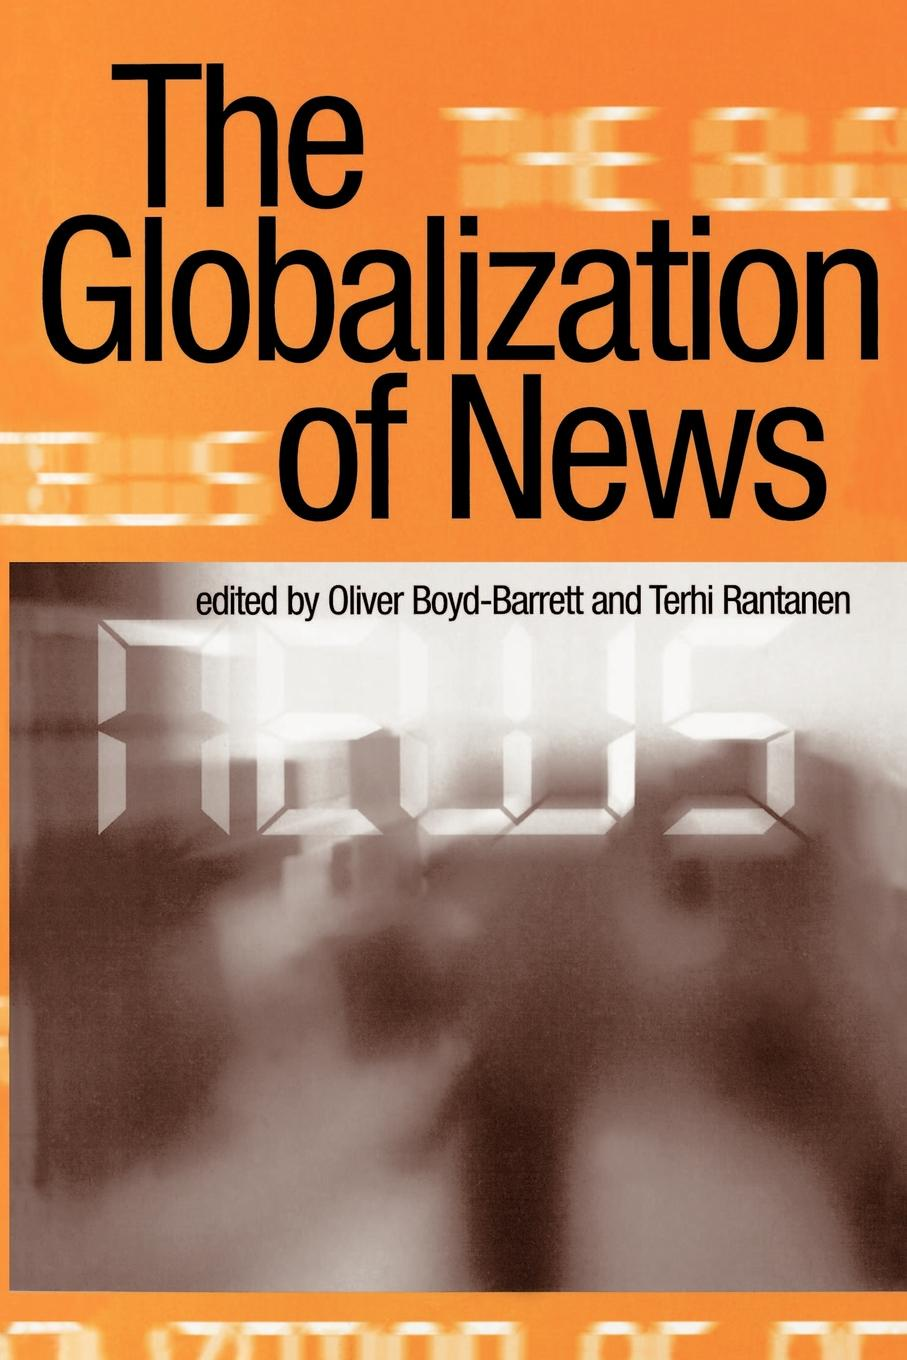 The Globalization of News barrie axford theories of globalization